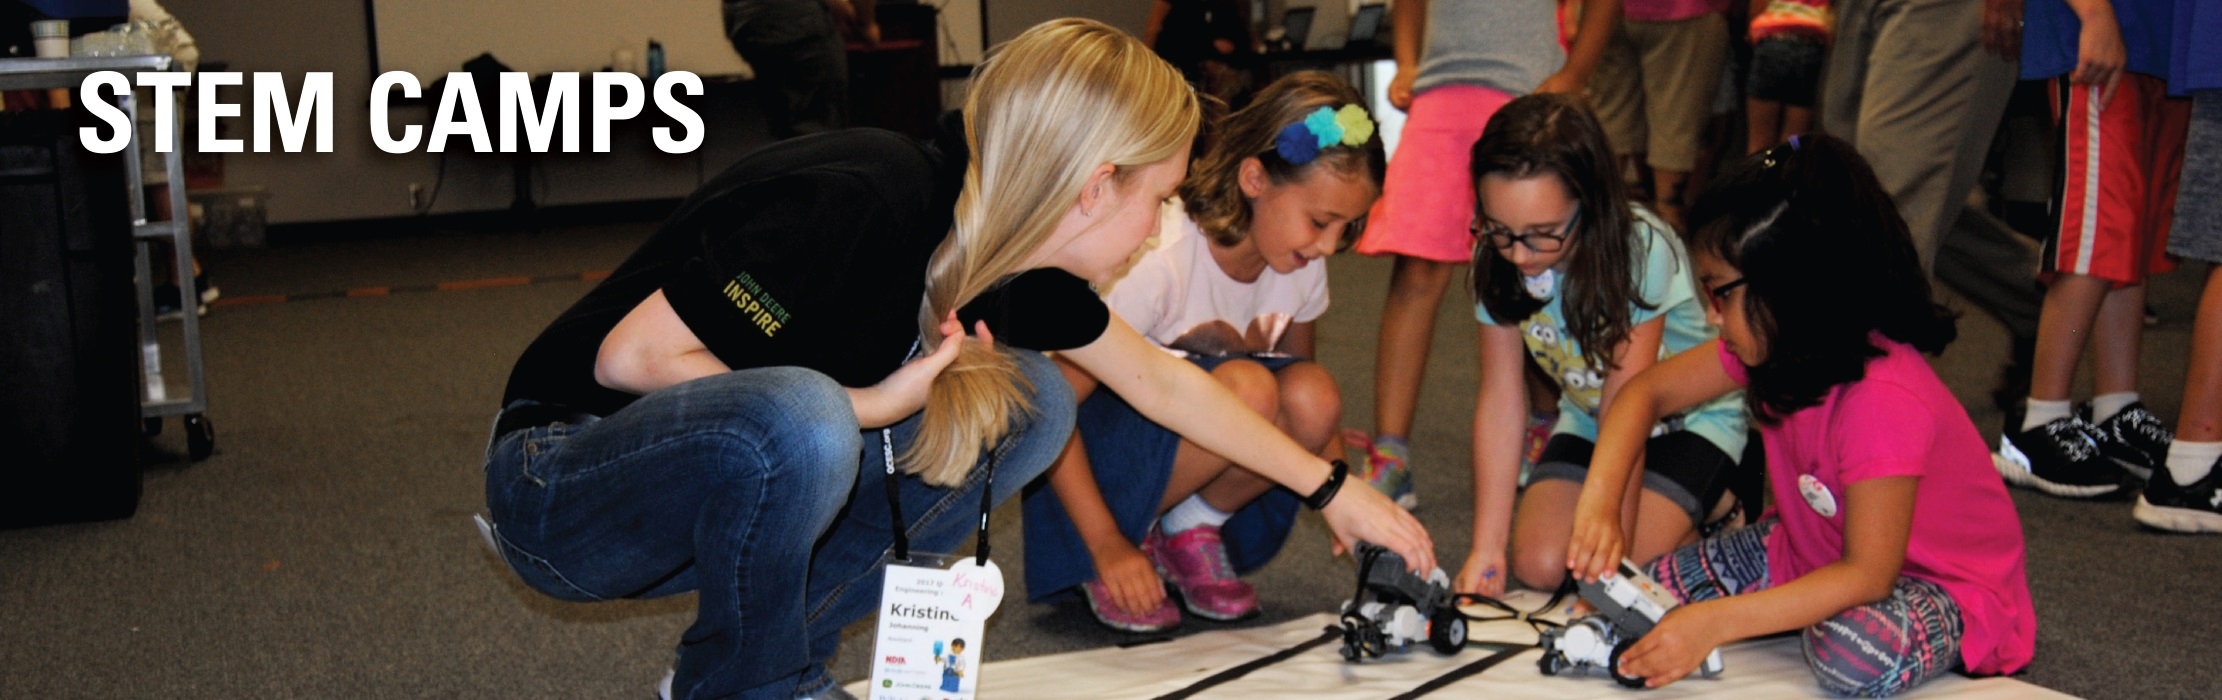 Industry engineer mentoring young girls at an ISU STEM camp.